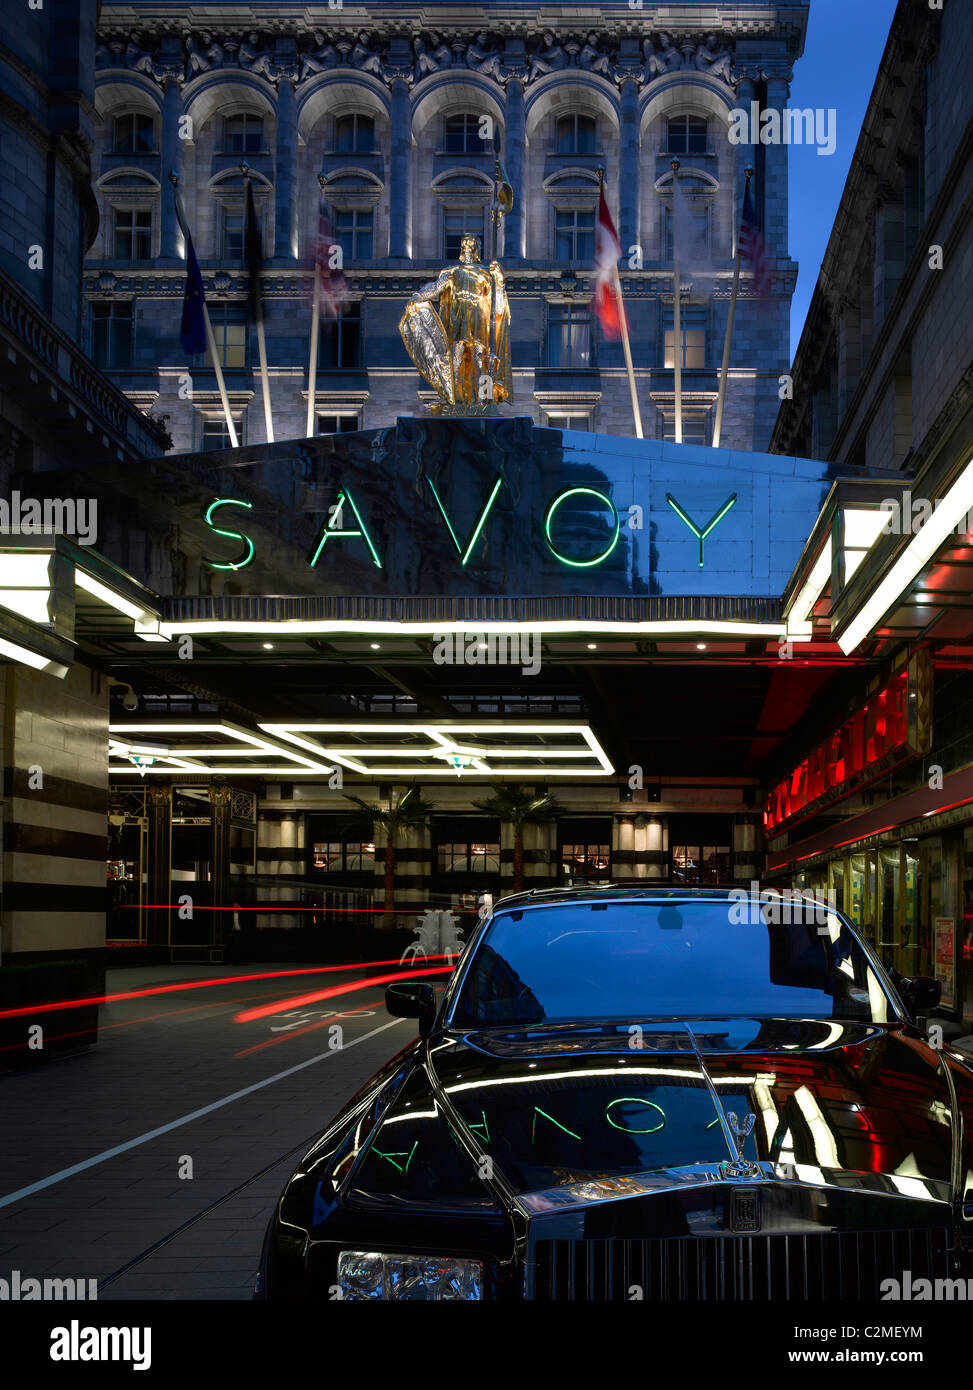 The Savoy Hotel refurbishment, completed 2010. Entrance at night. - Stock Image